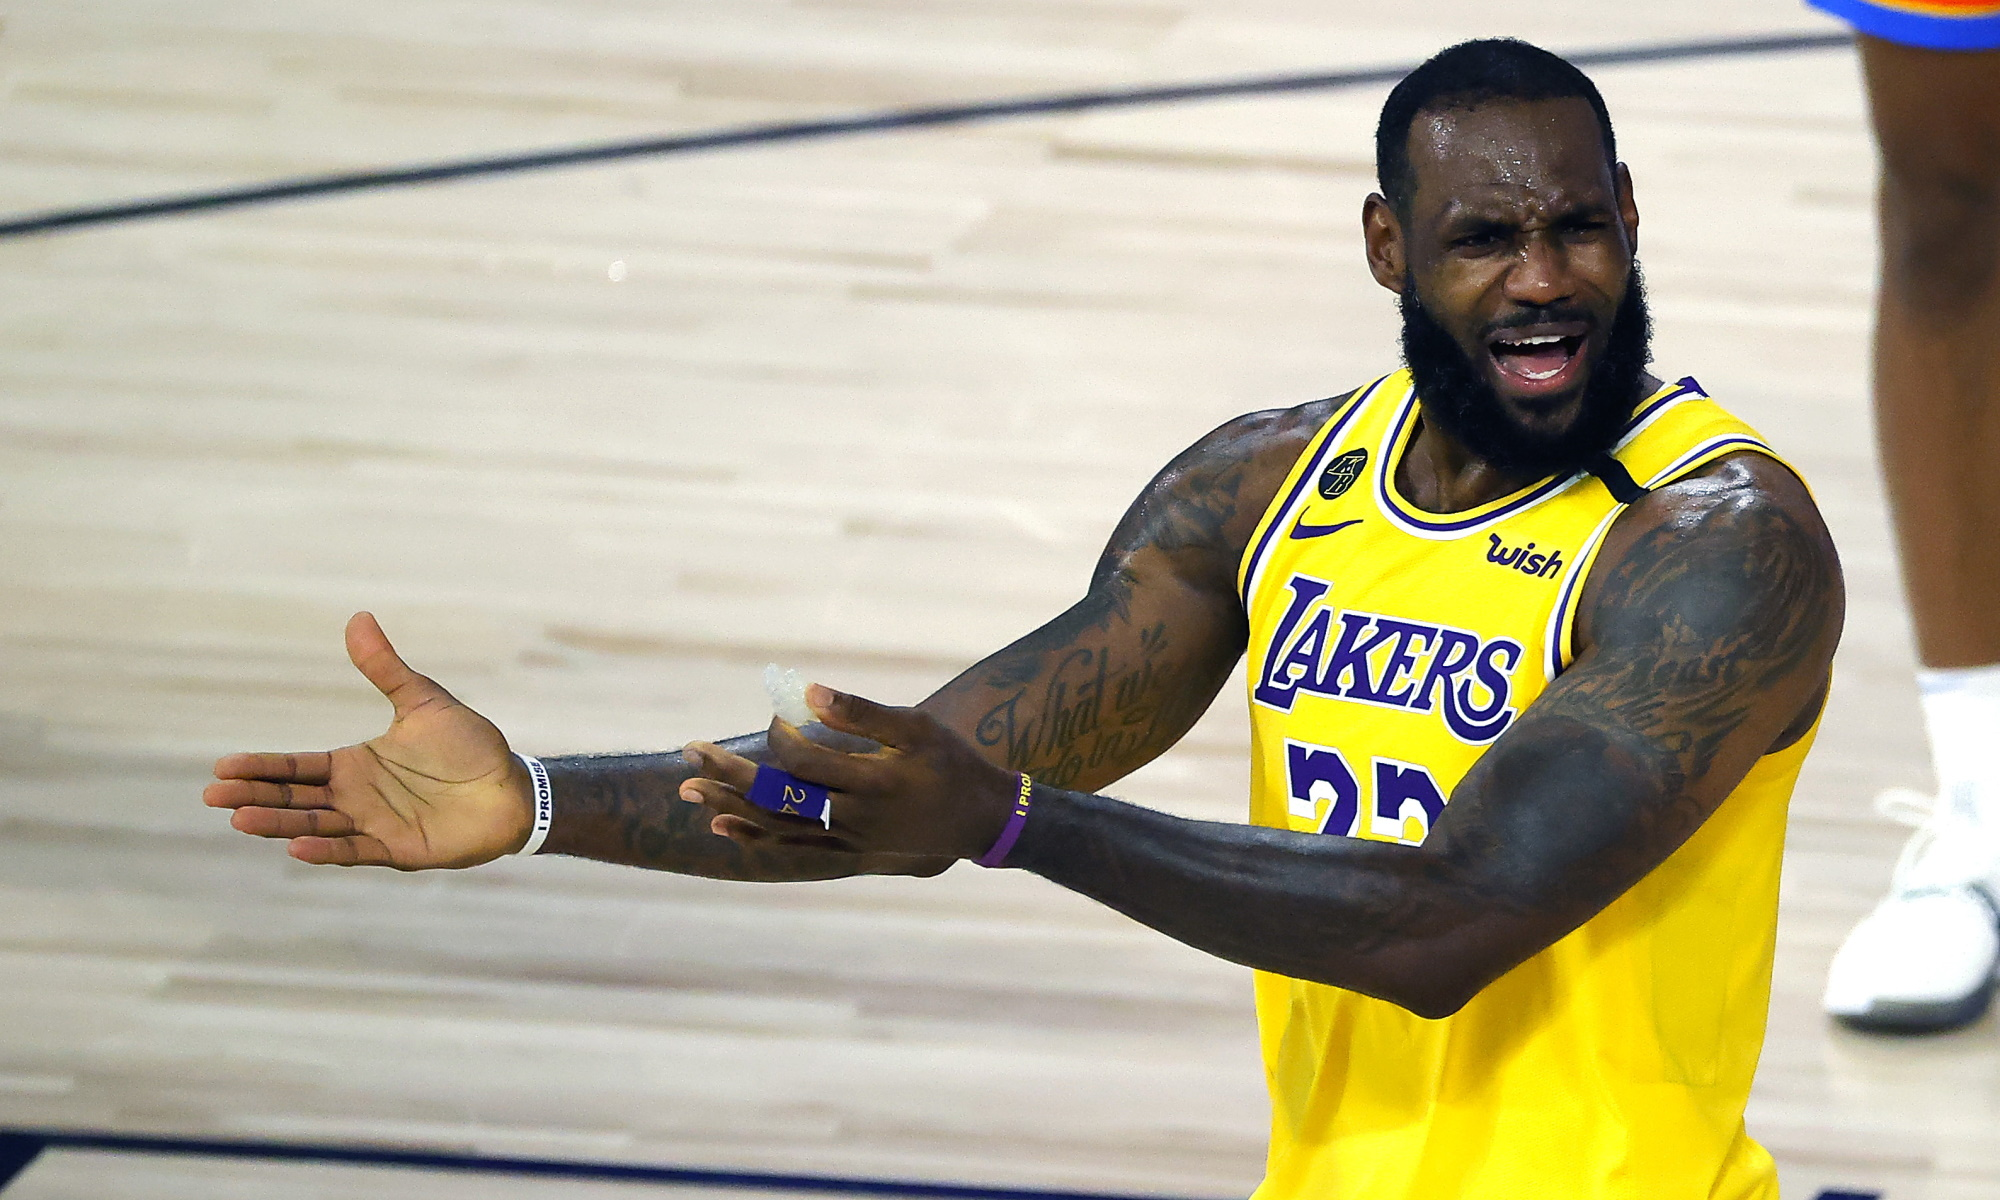 LeBron James of the Los Angeles Lakers reacts to a call against the Oklahoma City Thunder during the second half of an NBA basketball game Wednesday, Aug. 5, 2020, in Lake Buena Vista, Fla.